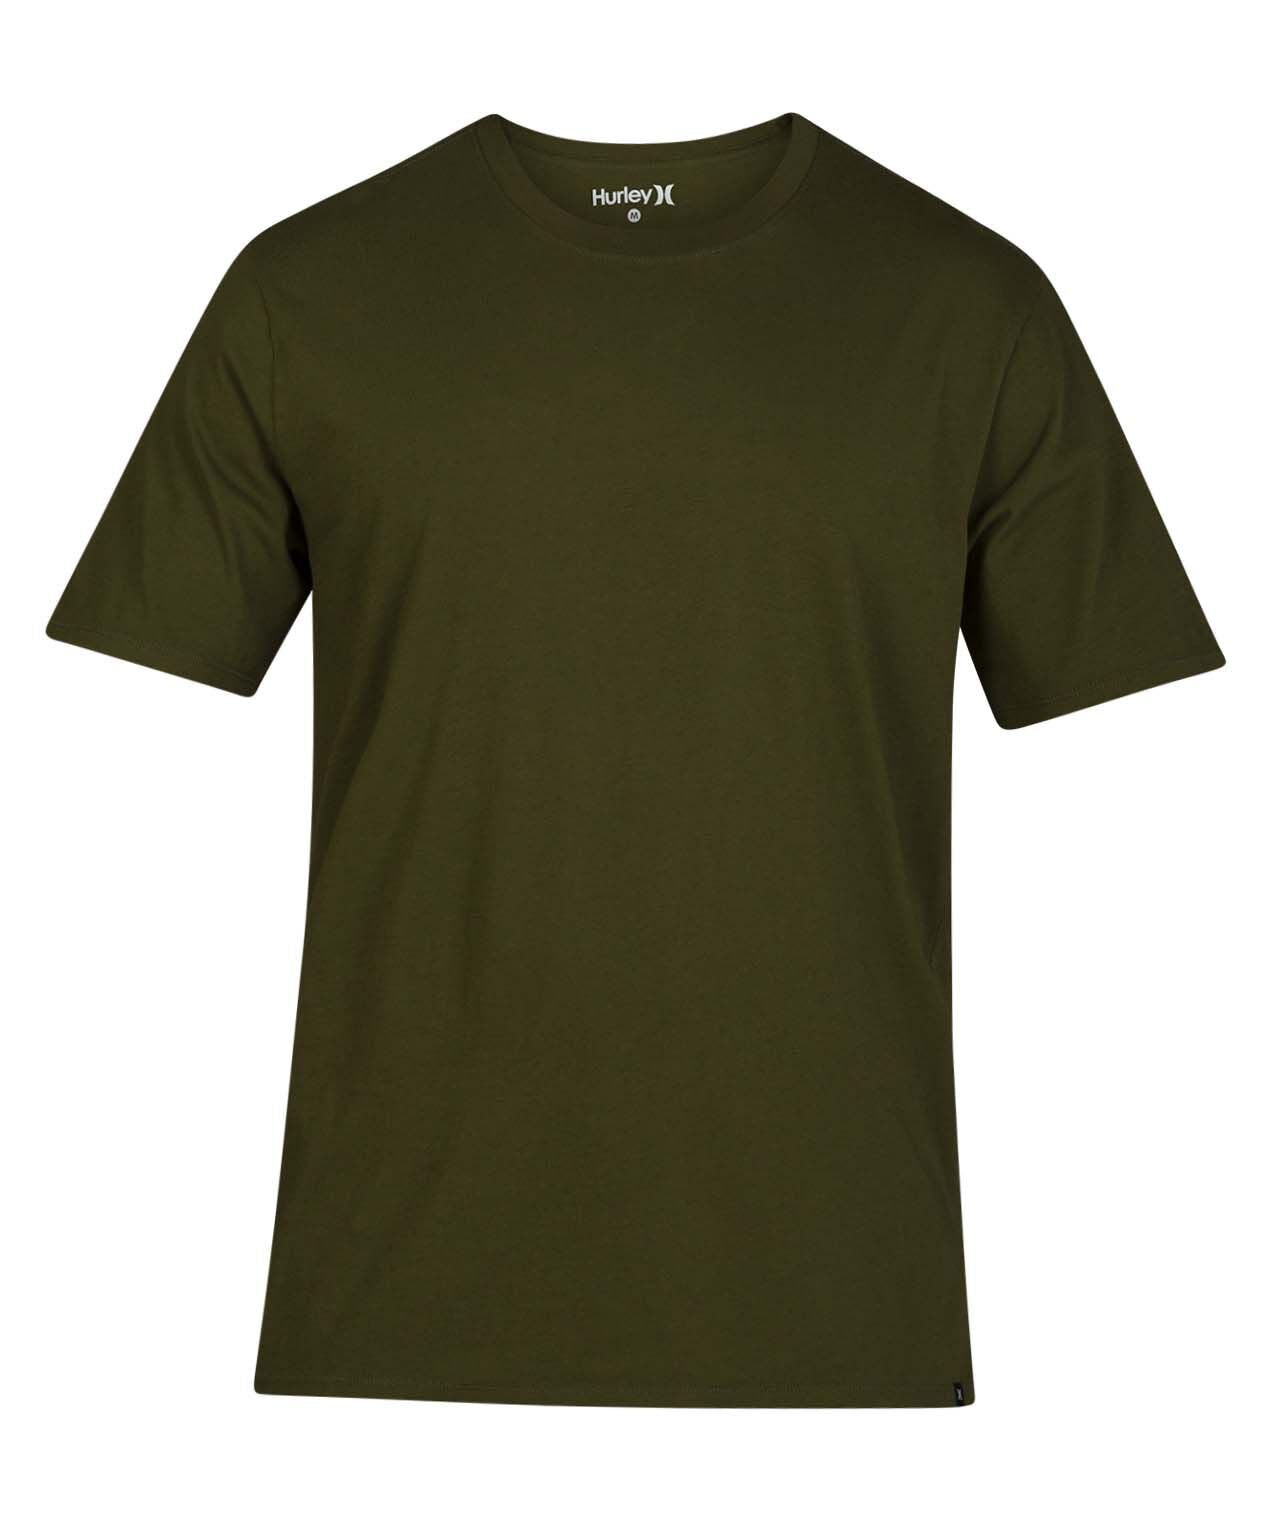 HURLEY MENS STAPLE GREEN TSHIRT